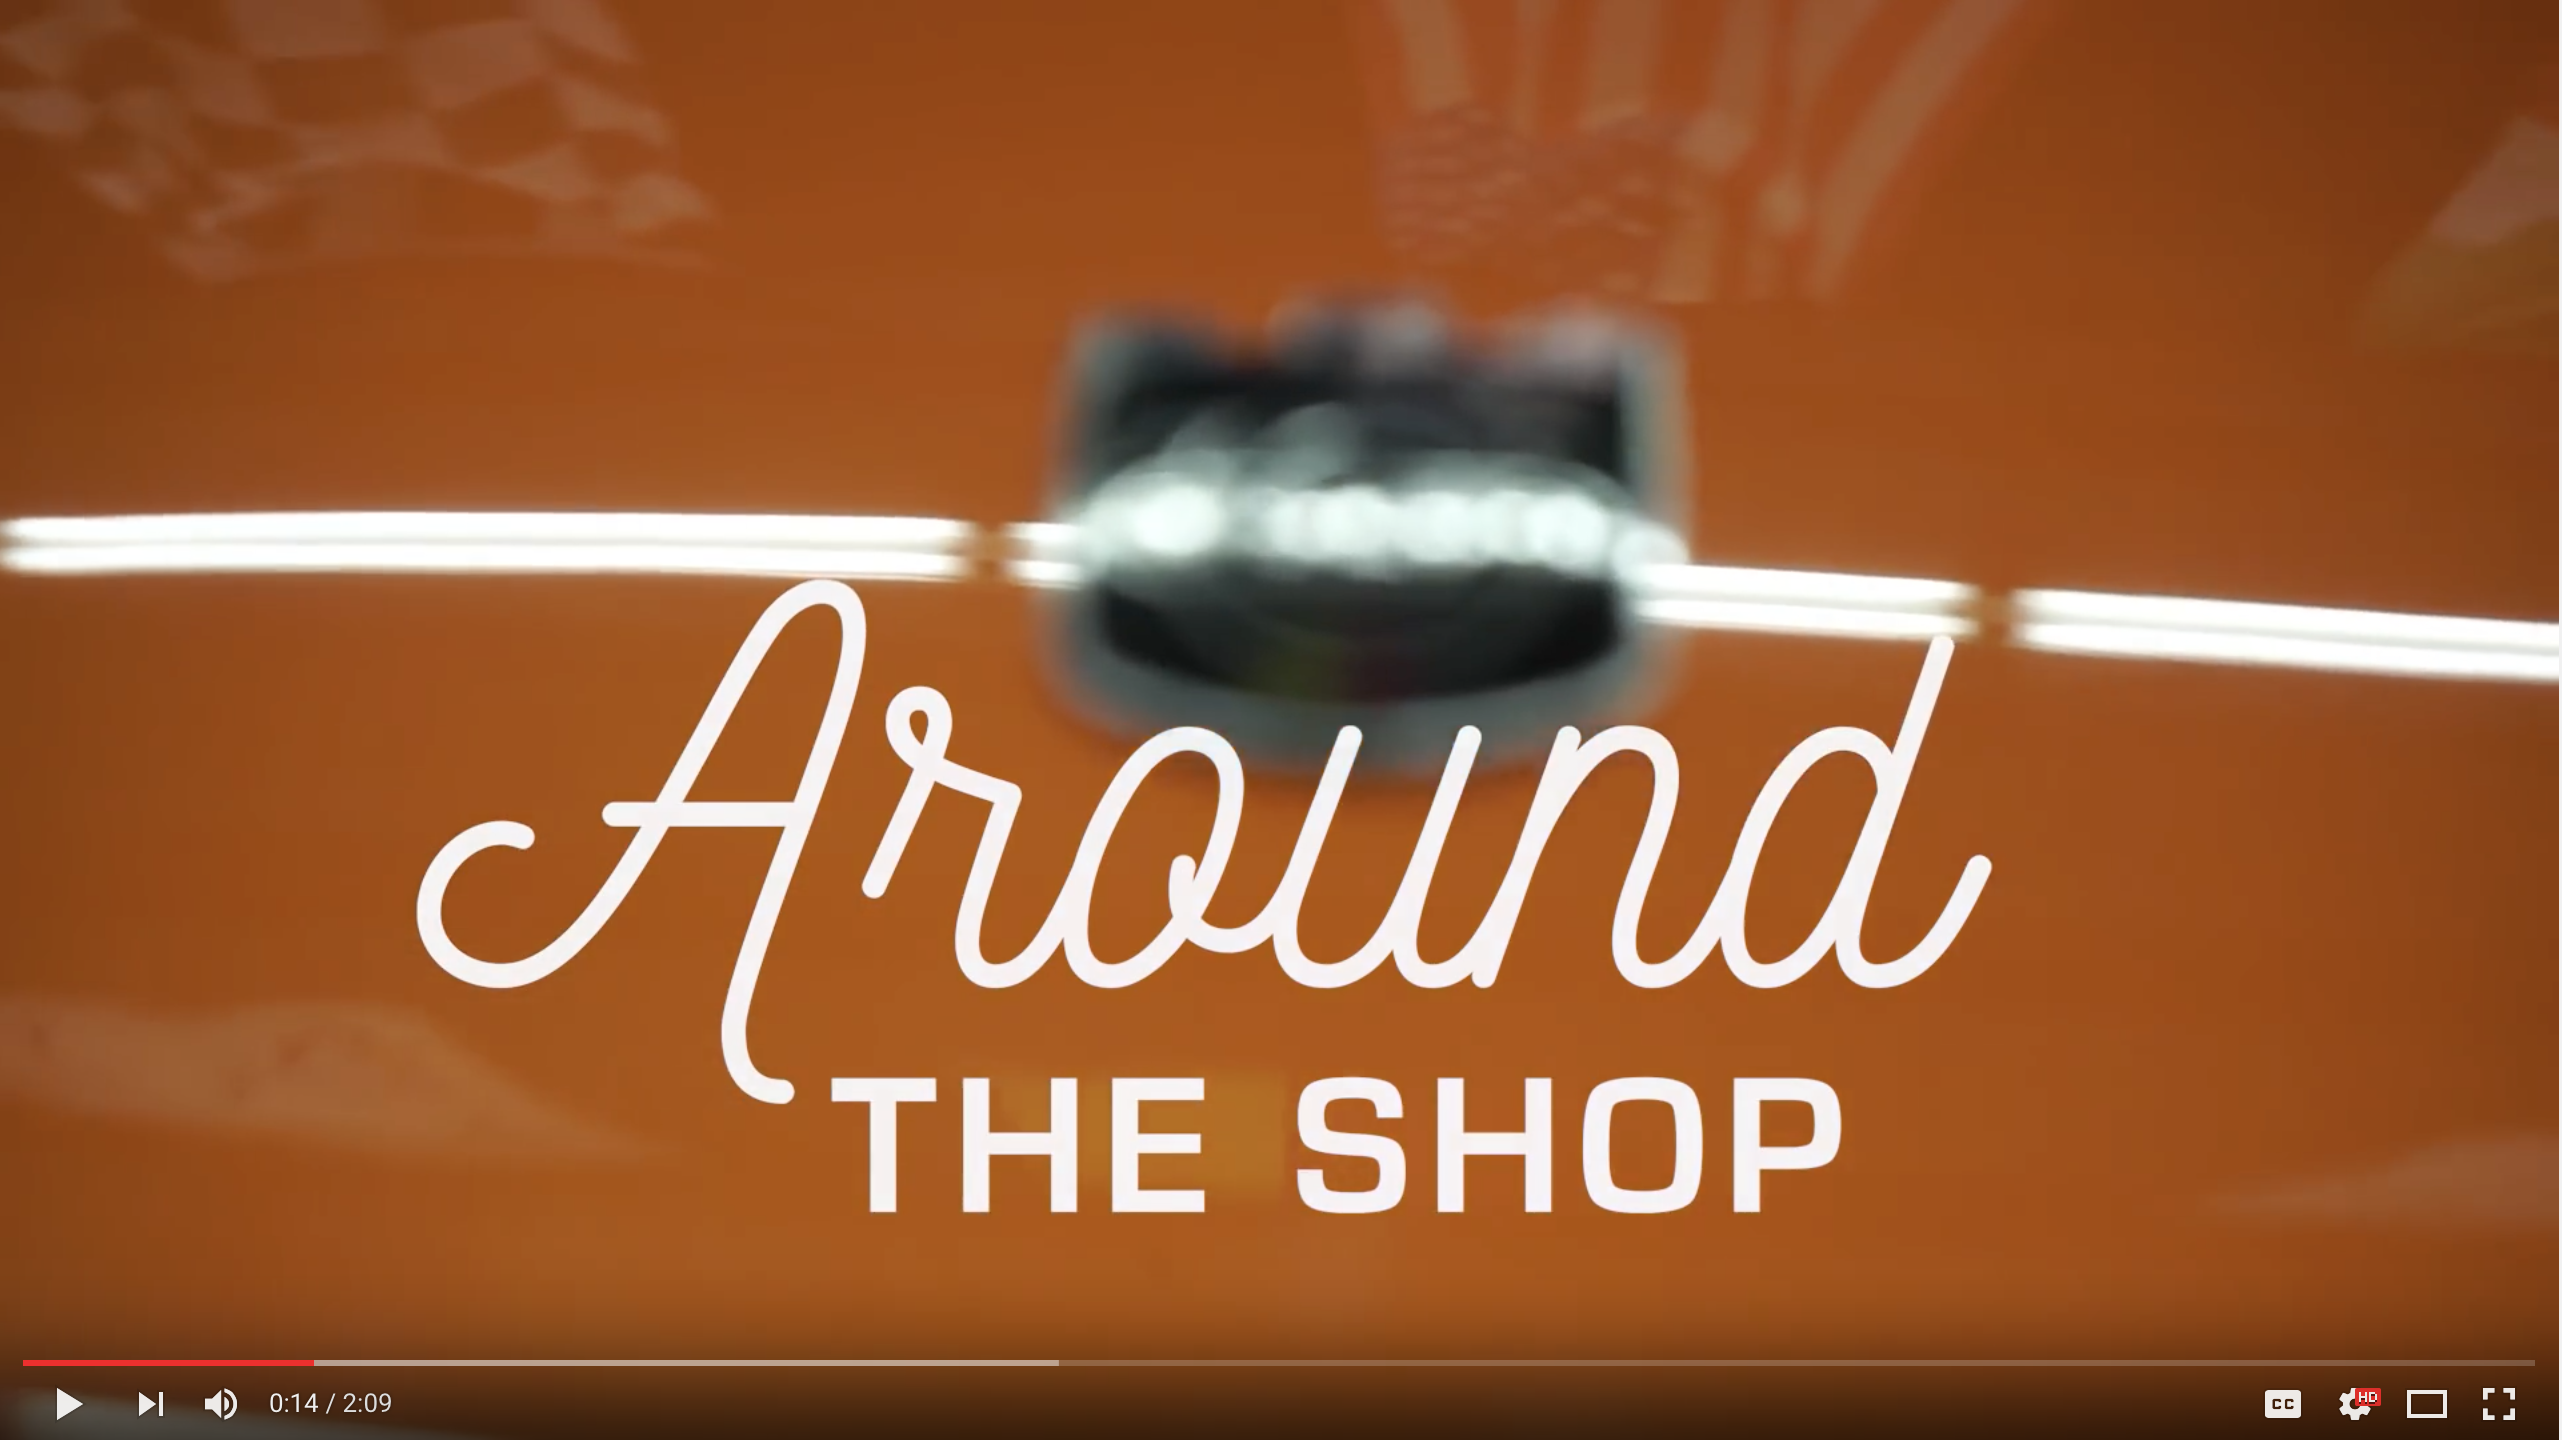 Our Latest Around the Shop Video